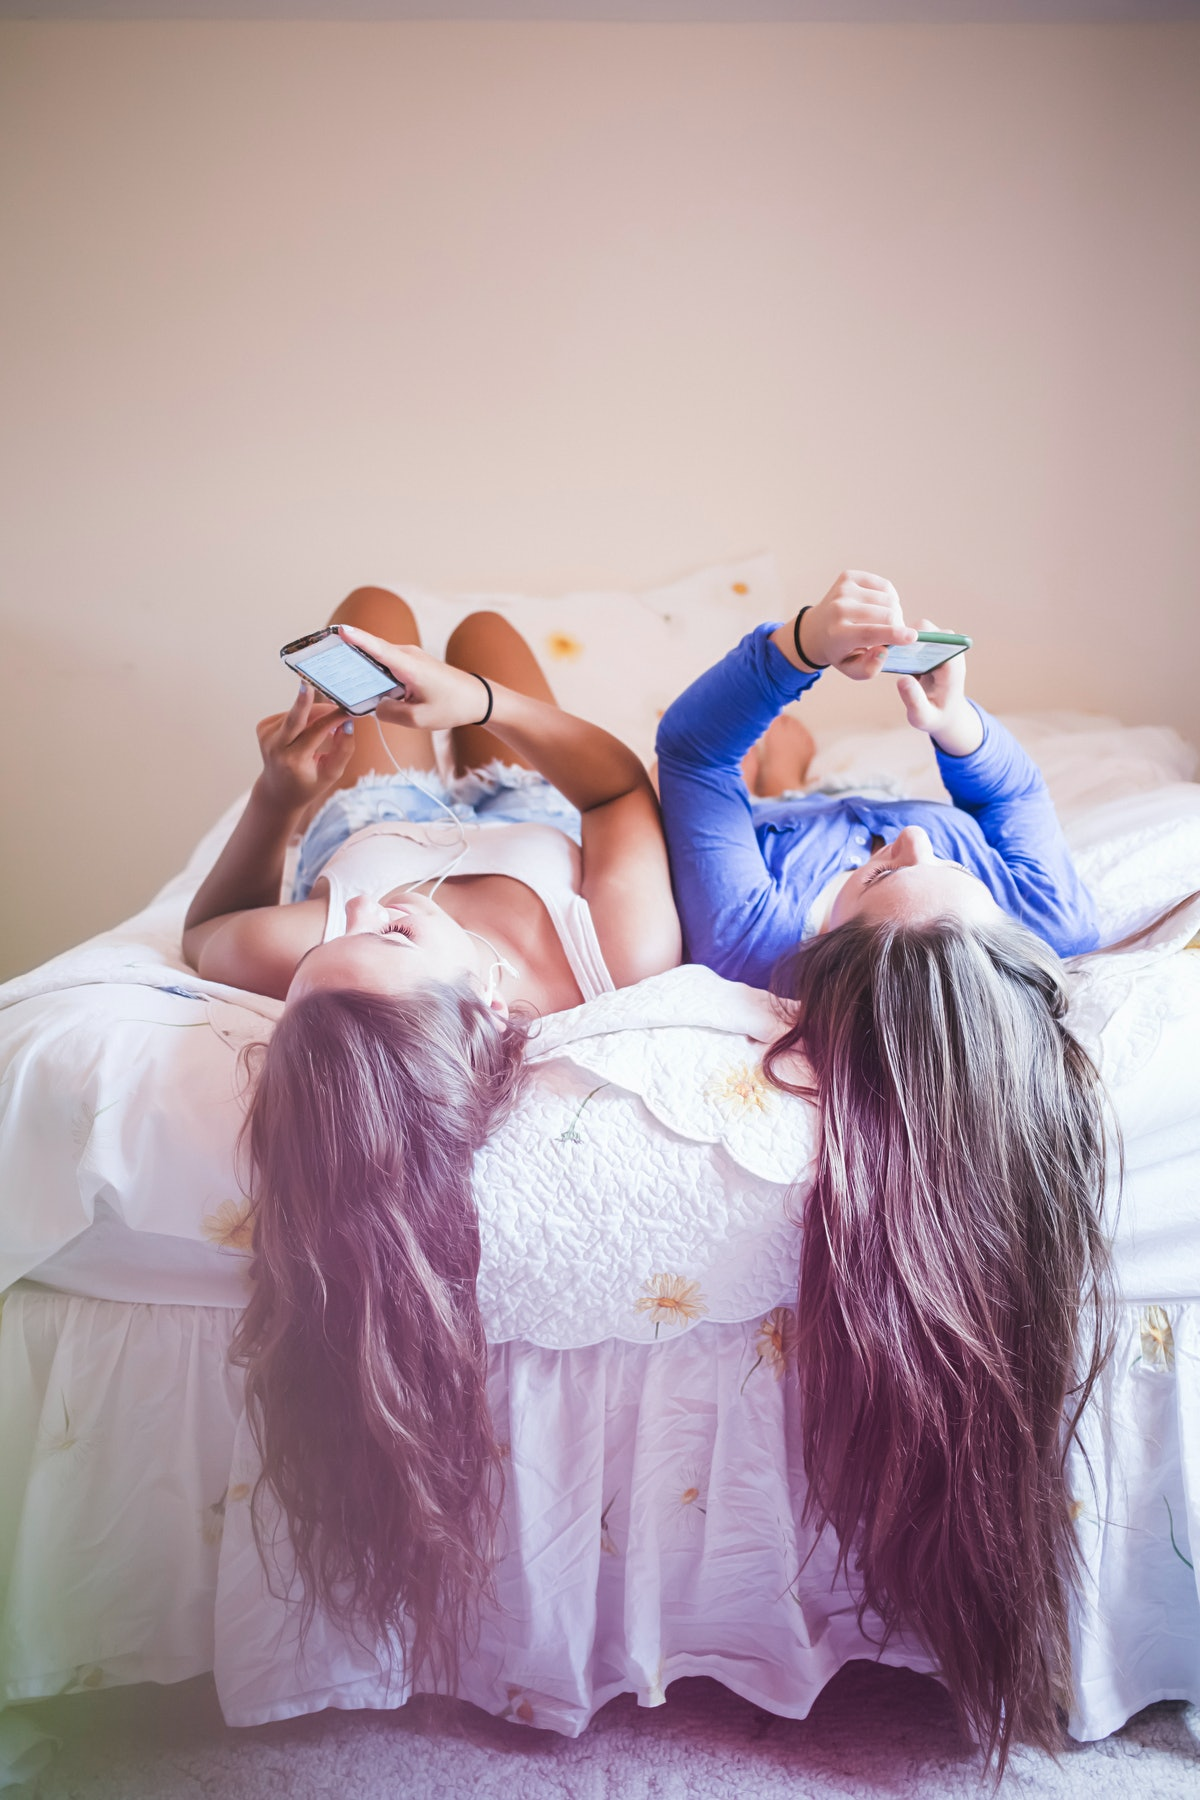 Young girls laying upside down on a bed looking at their phones, thinking of what lazy Instagram captions to post.